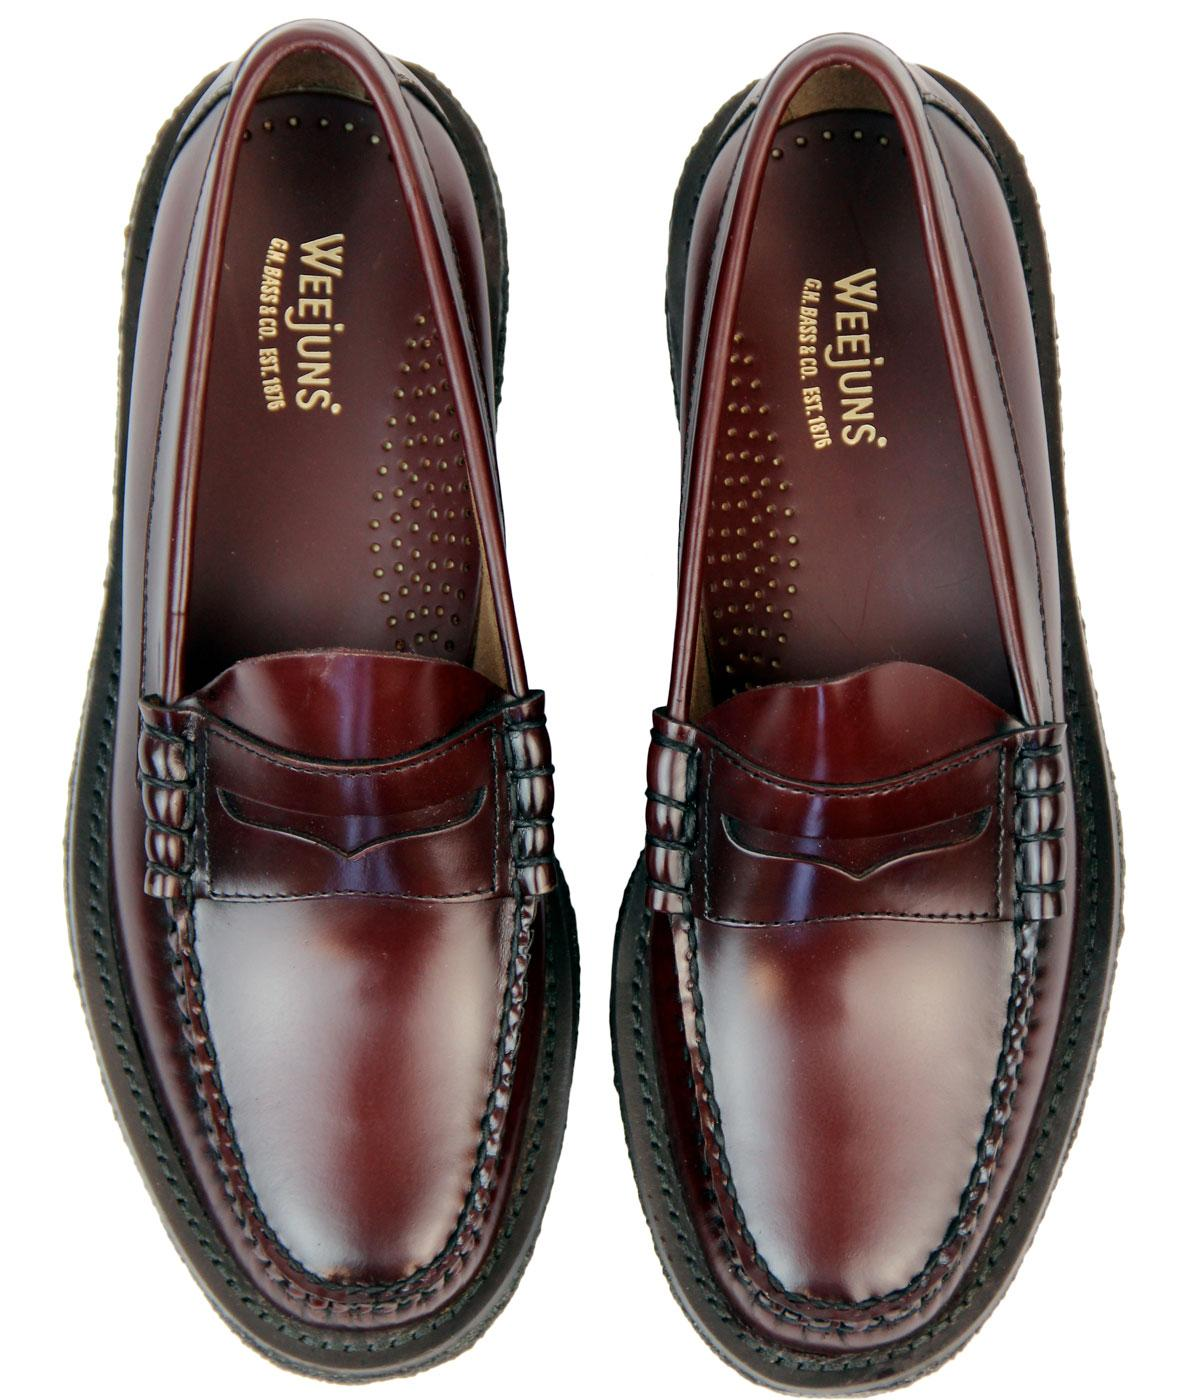 BASS WEEJUNS Larson Mod Crepe Sole Penny Loafer Shoes in Wine